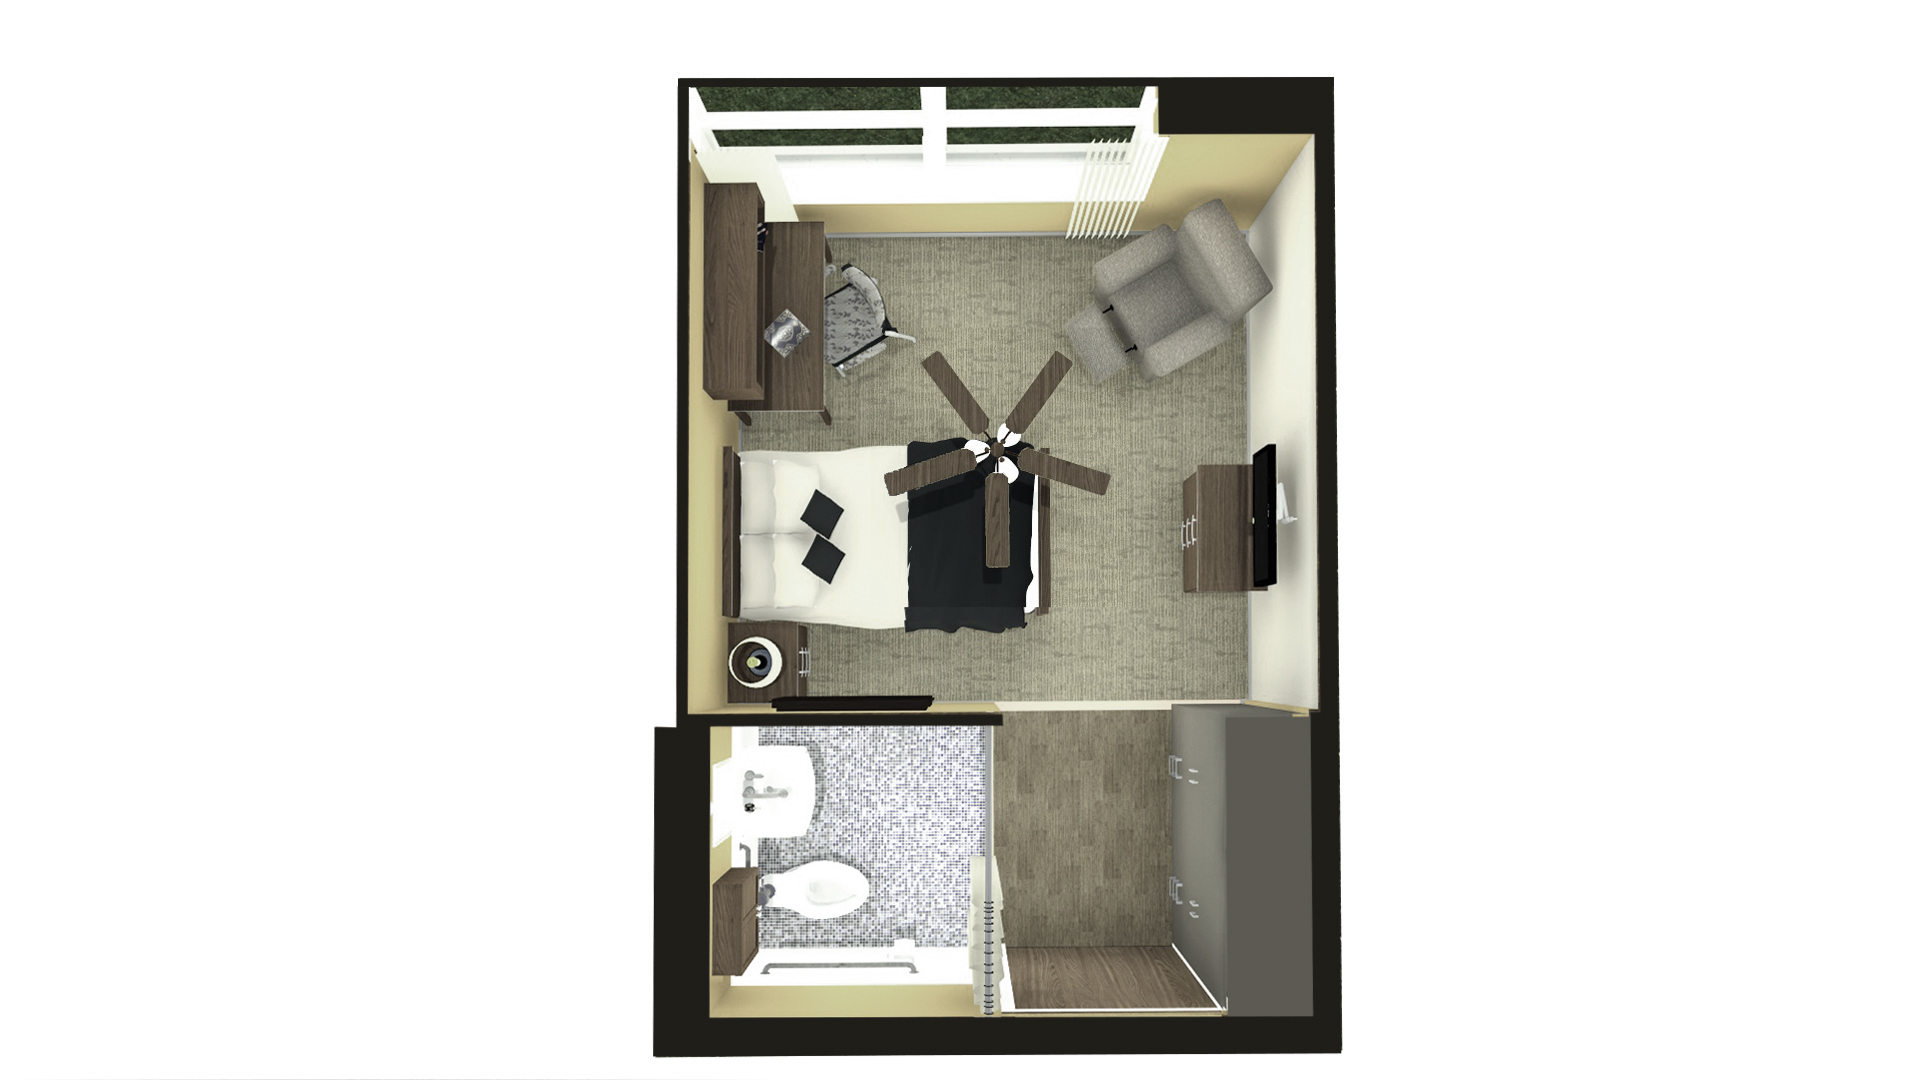 IN PROCESS: Extruded Floor Plan View